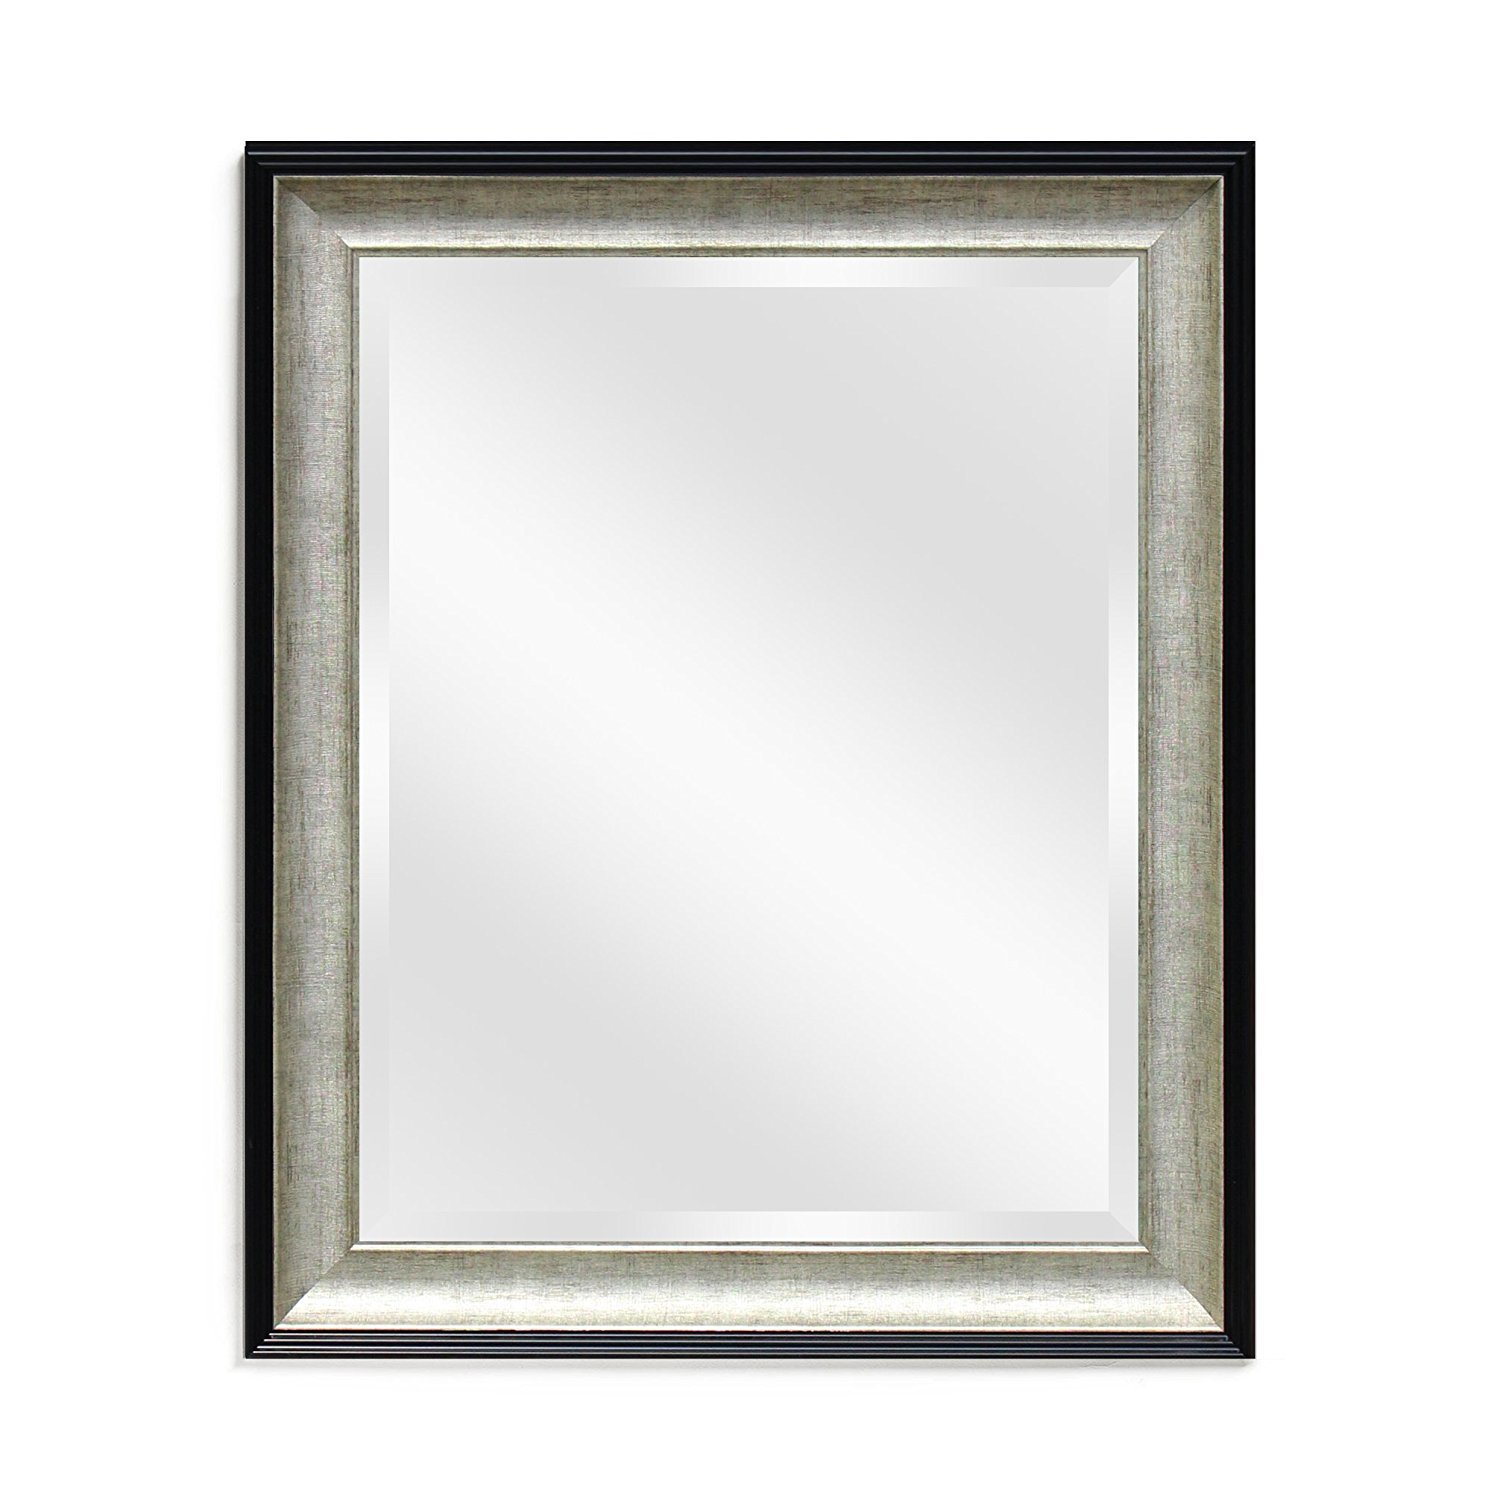 Wall Beveled Mirror Framed - Bedroom or Bathroom Rectangular Frame Hangs Horizontal & Vertical by EcoHome (21